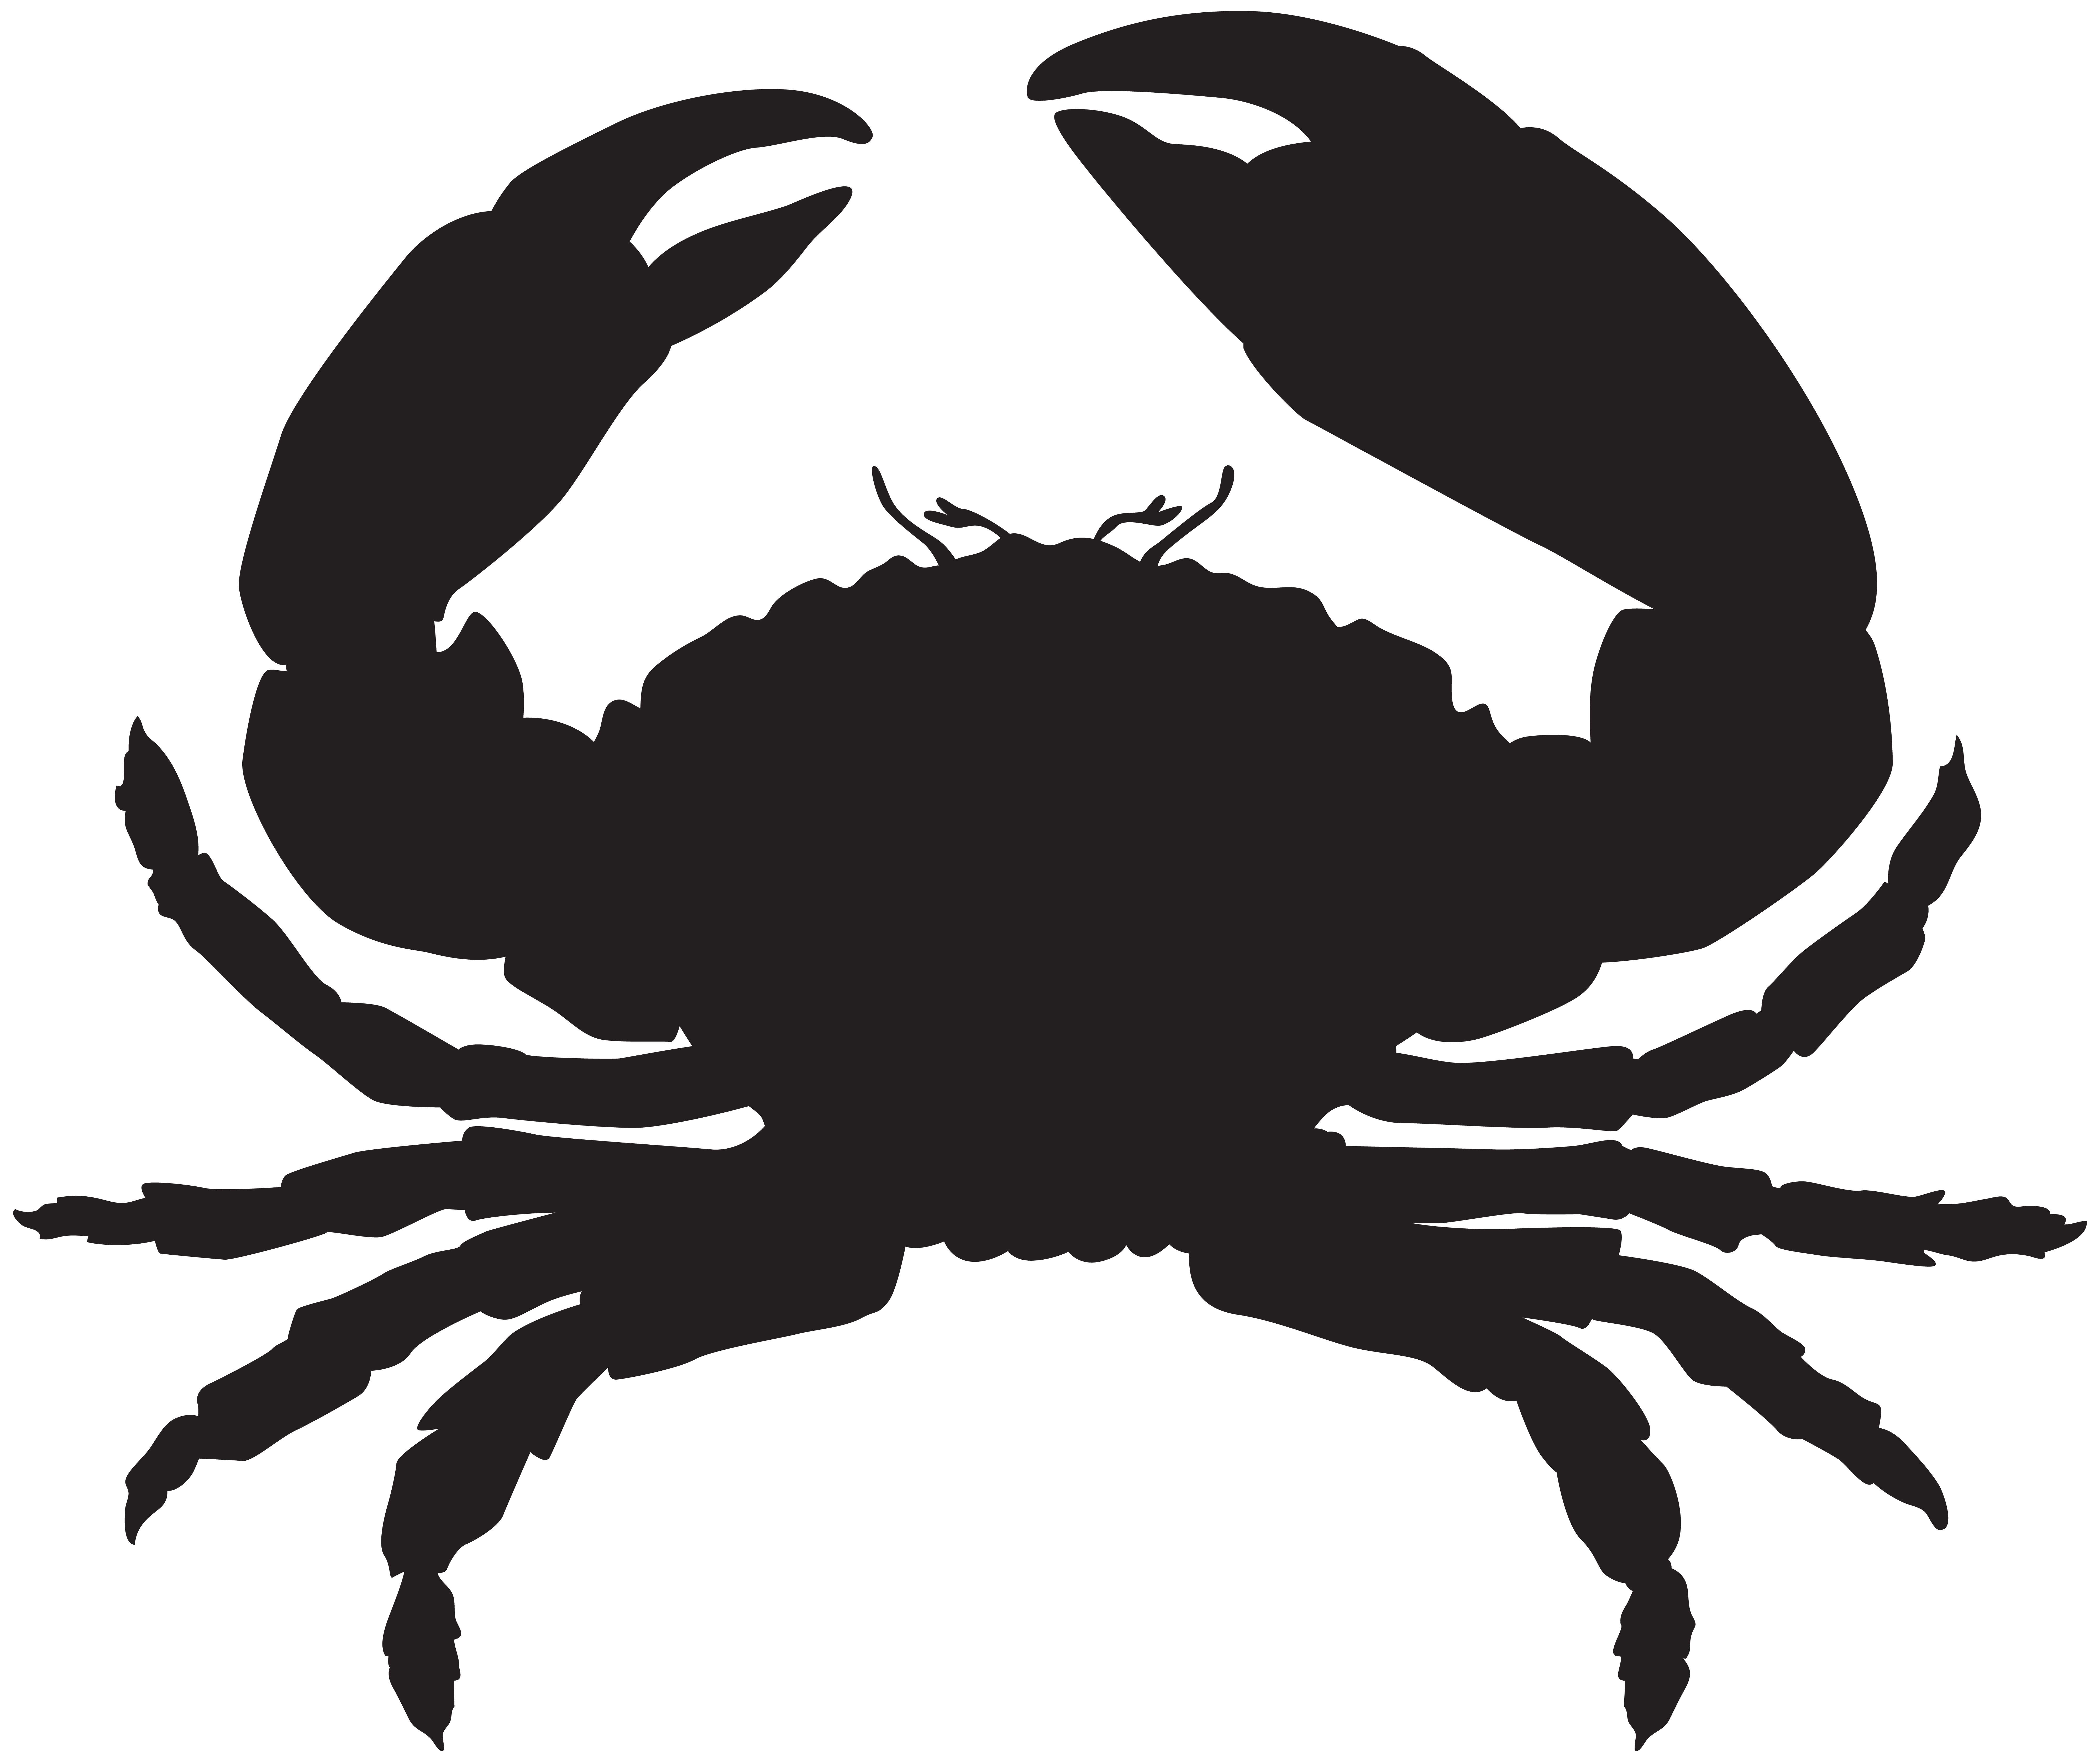 Crab Silhouette PNG Clip Art Image.